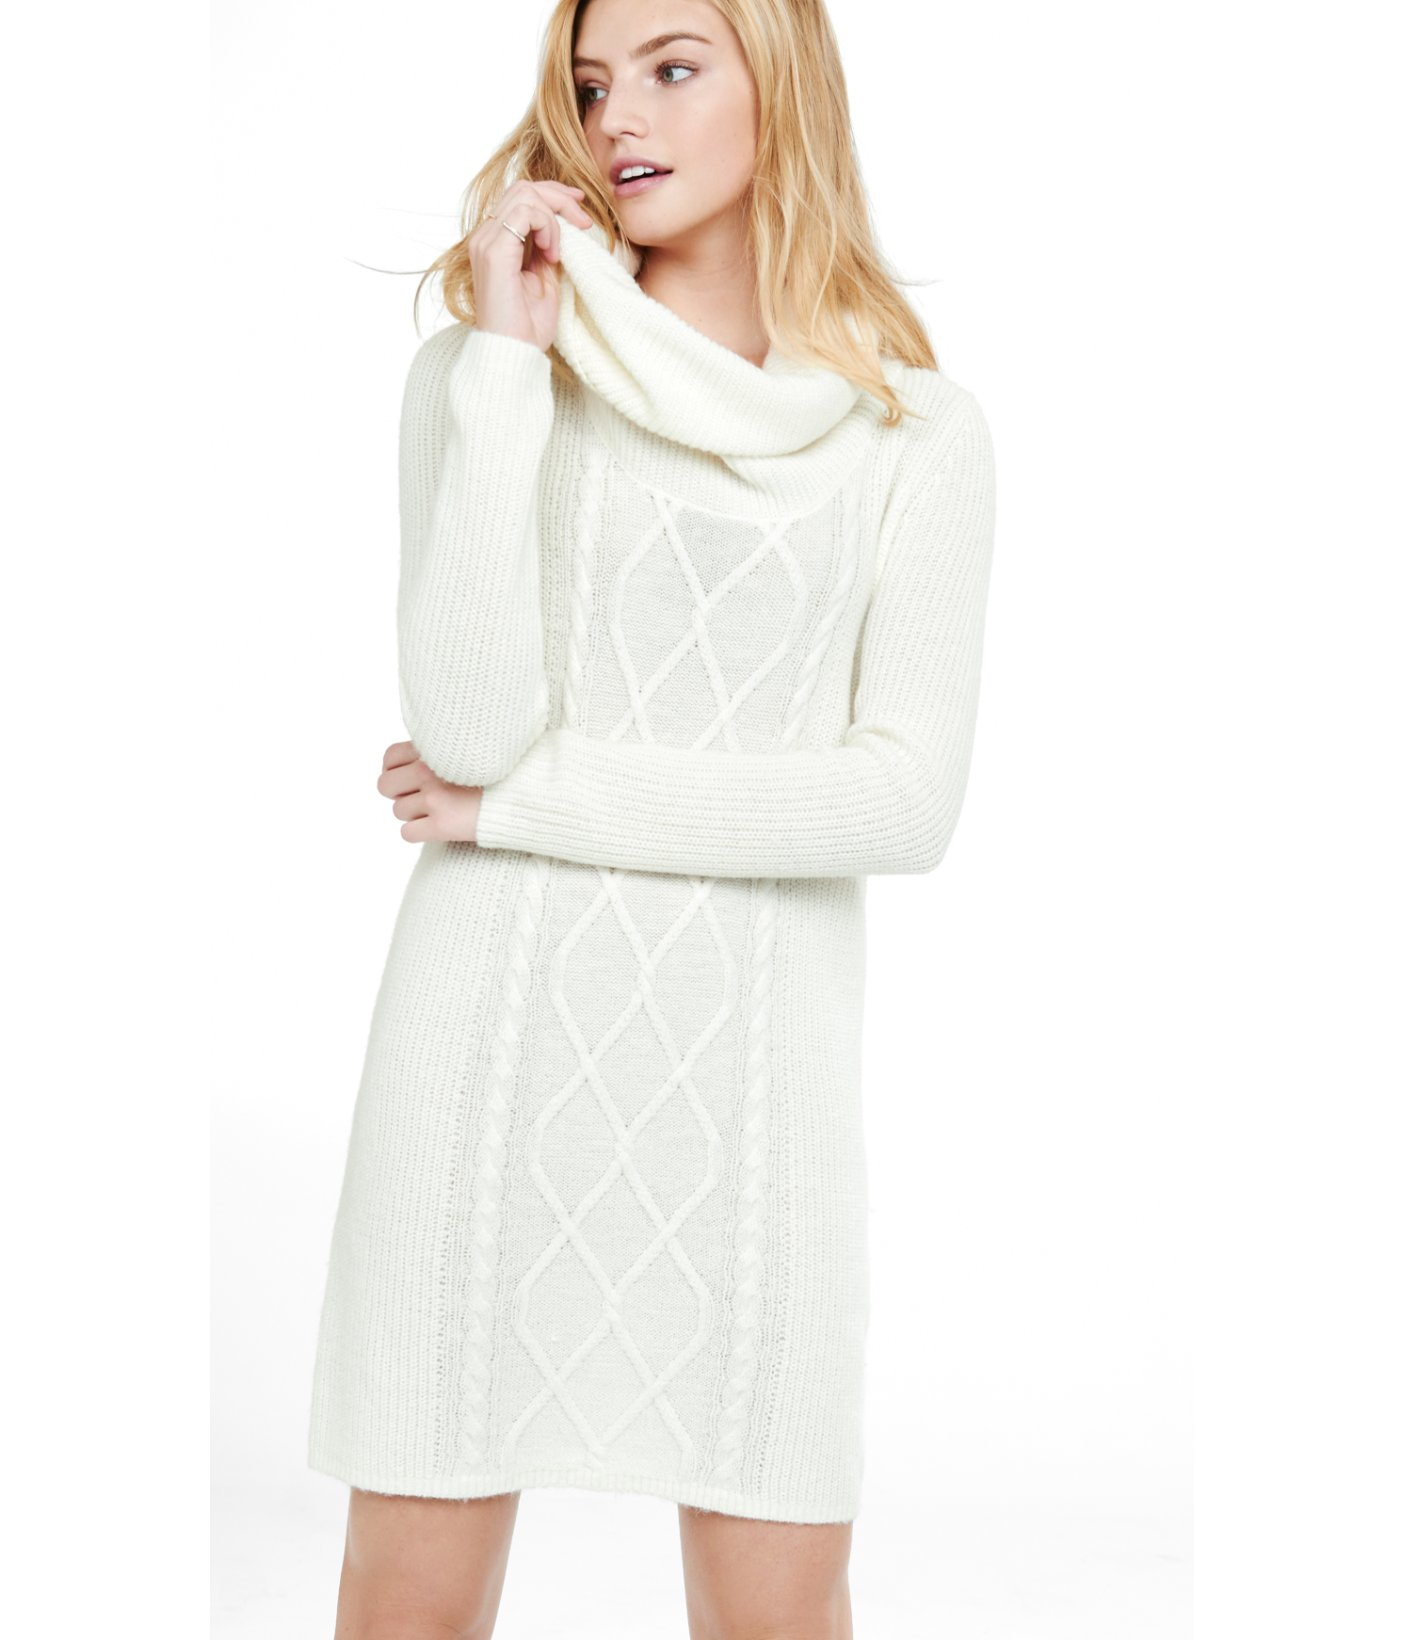 Cowl Neck Dress: Express Soft Ivory Cowl Neck Mixed Knit Sweater Dress In